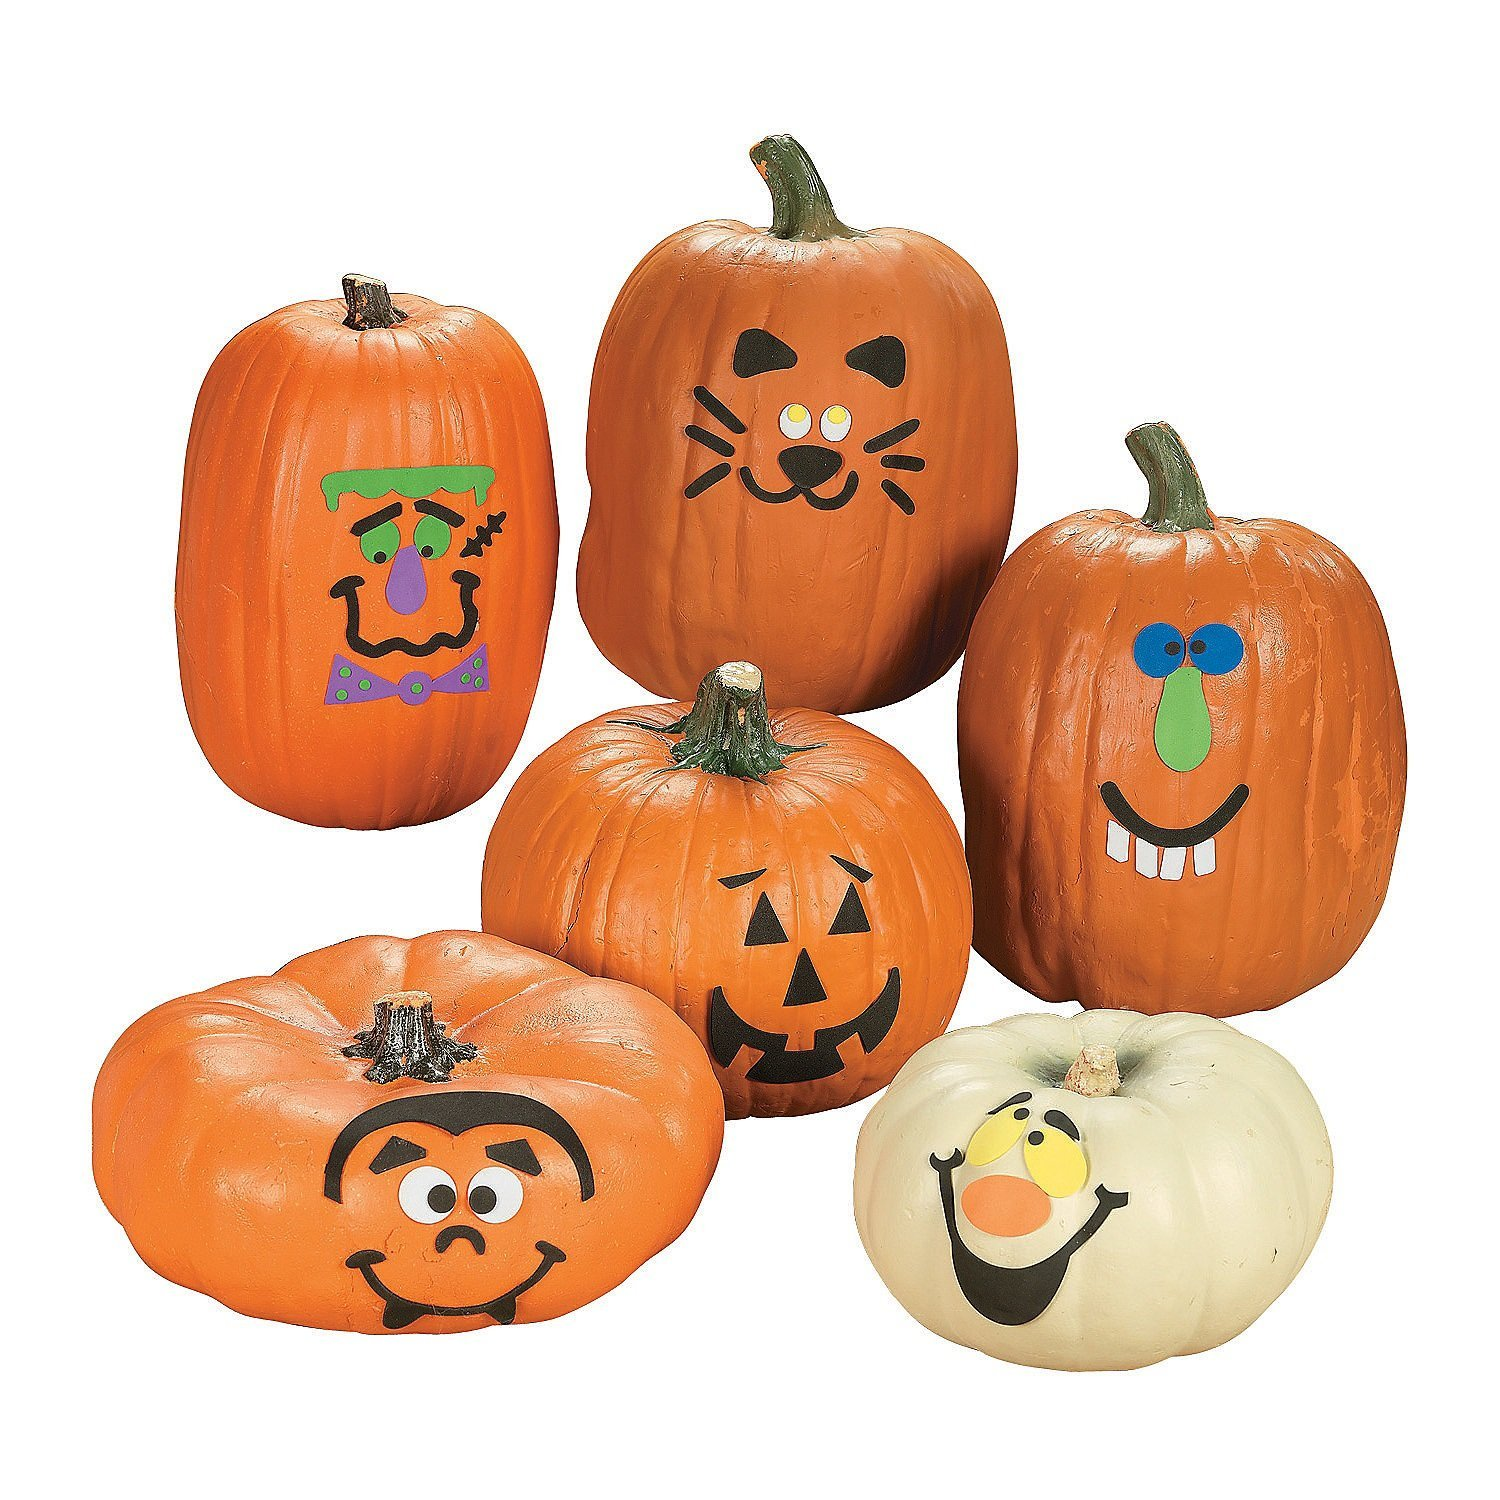 7 Halloween Craft Kits For Kids: Foam Pumpkin Decorations